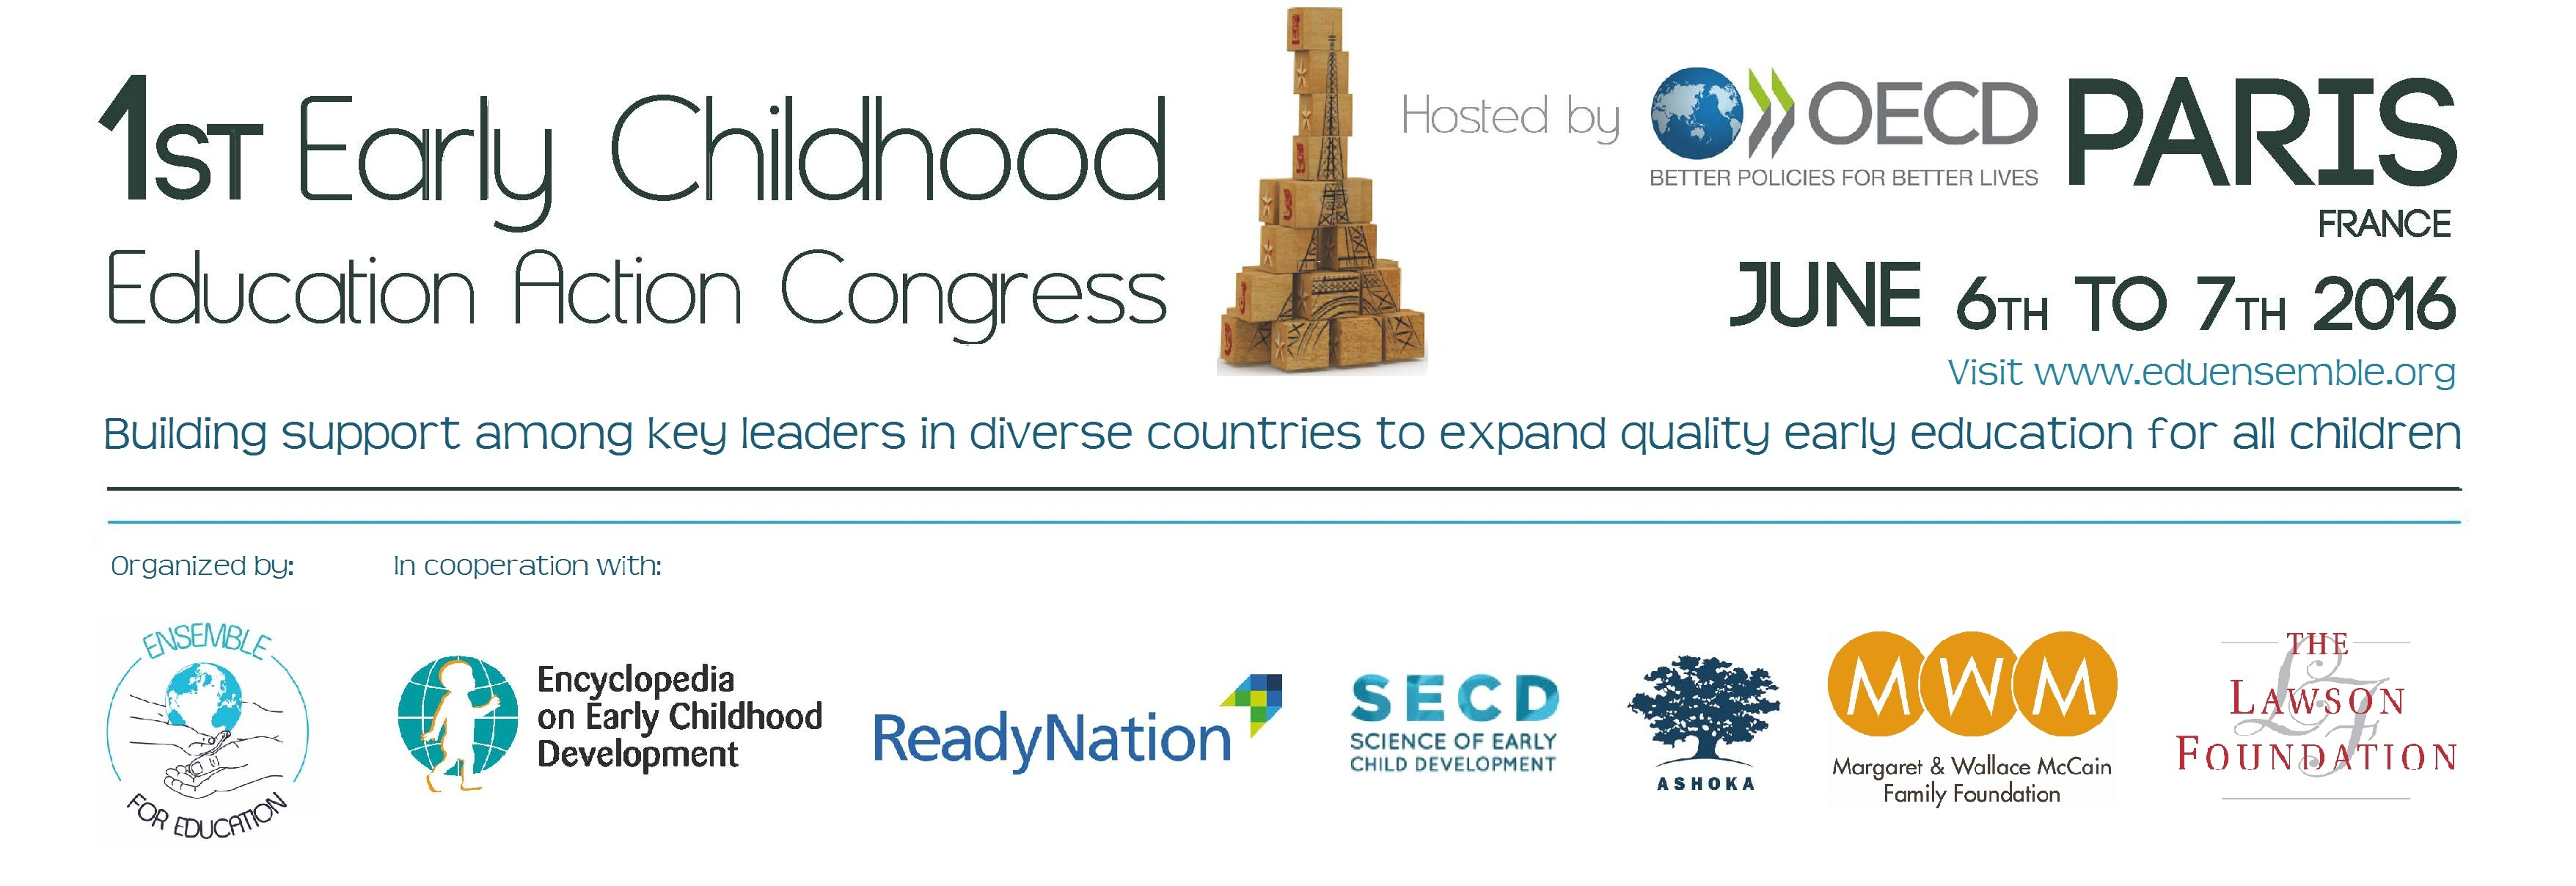 OECD Congress Paris 2016